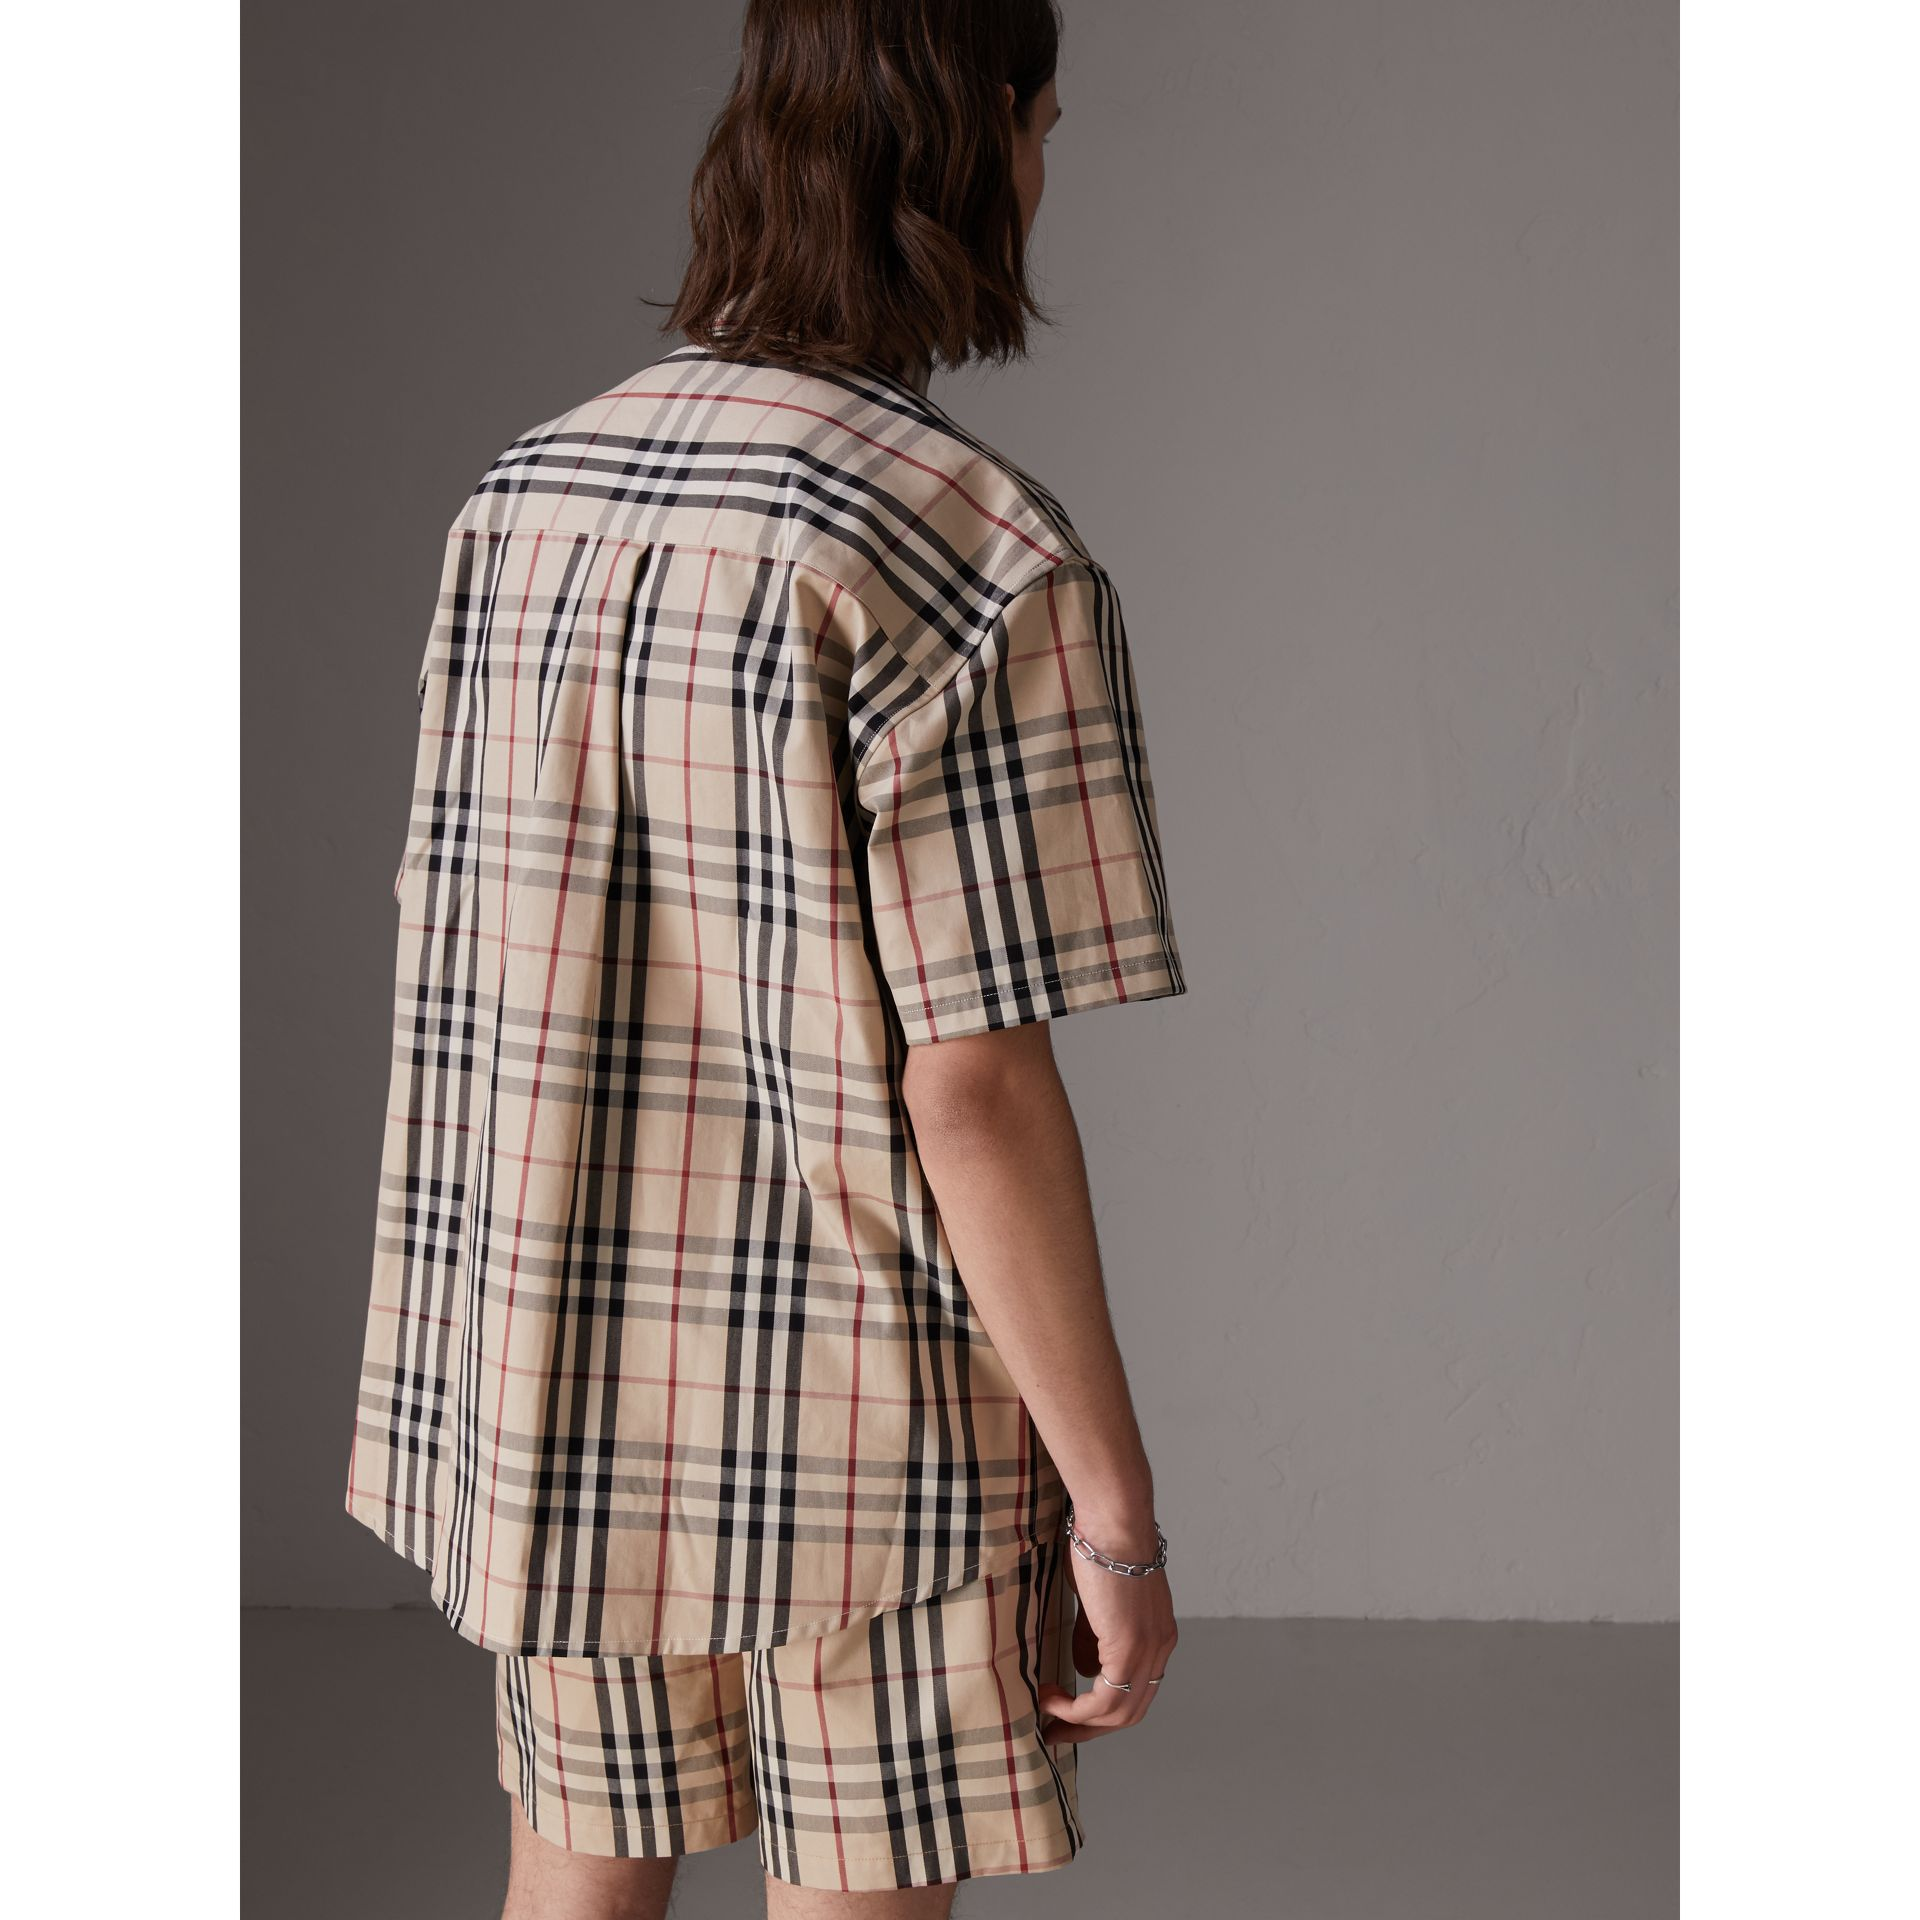 Gosha x Burberry Short-sleeve Check Shirt in Honey | Burberry Singapore - gallery image 5